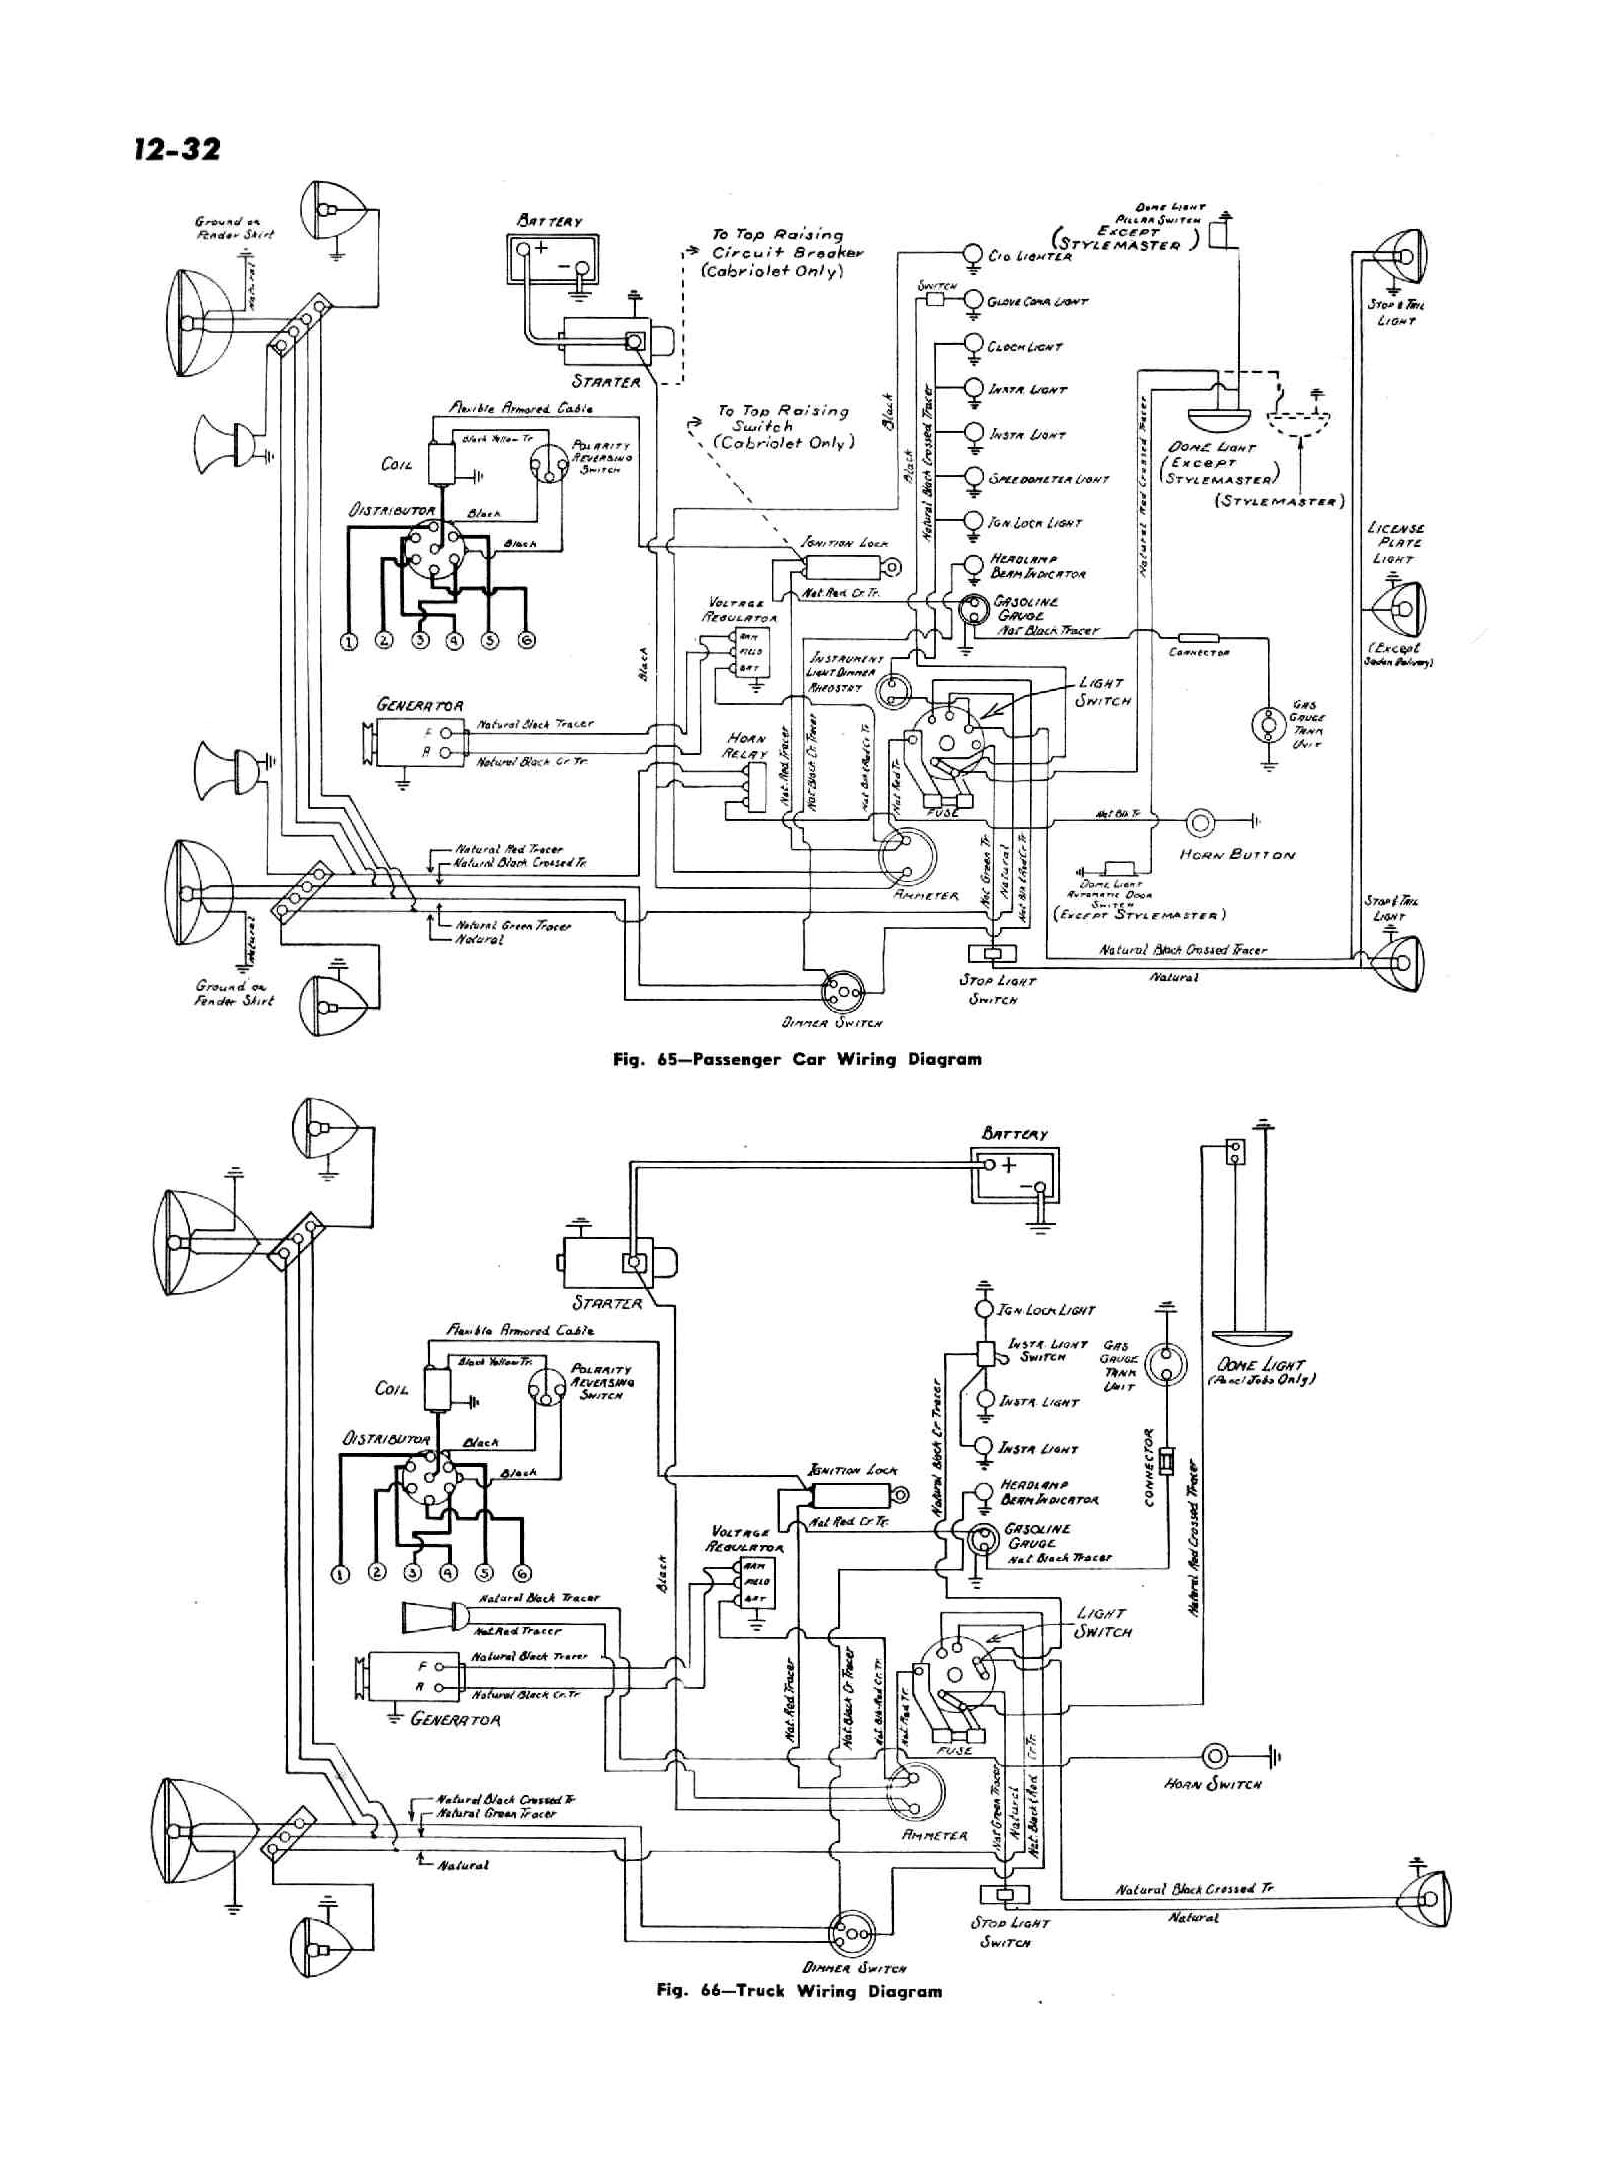 1956 oldsmobile wiring diagram wiring diagram 2001 Oldsmobile Bravada Interior 1957 oldsmobile engine diagram 6 10 woodmarquetry de u20221957 oldsmobile engine wiring diagram 18 3